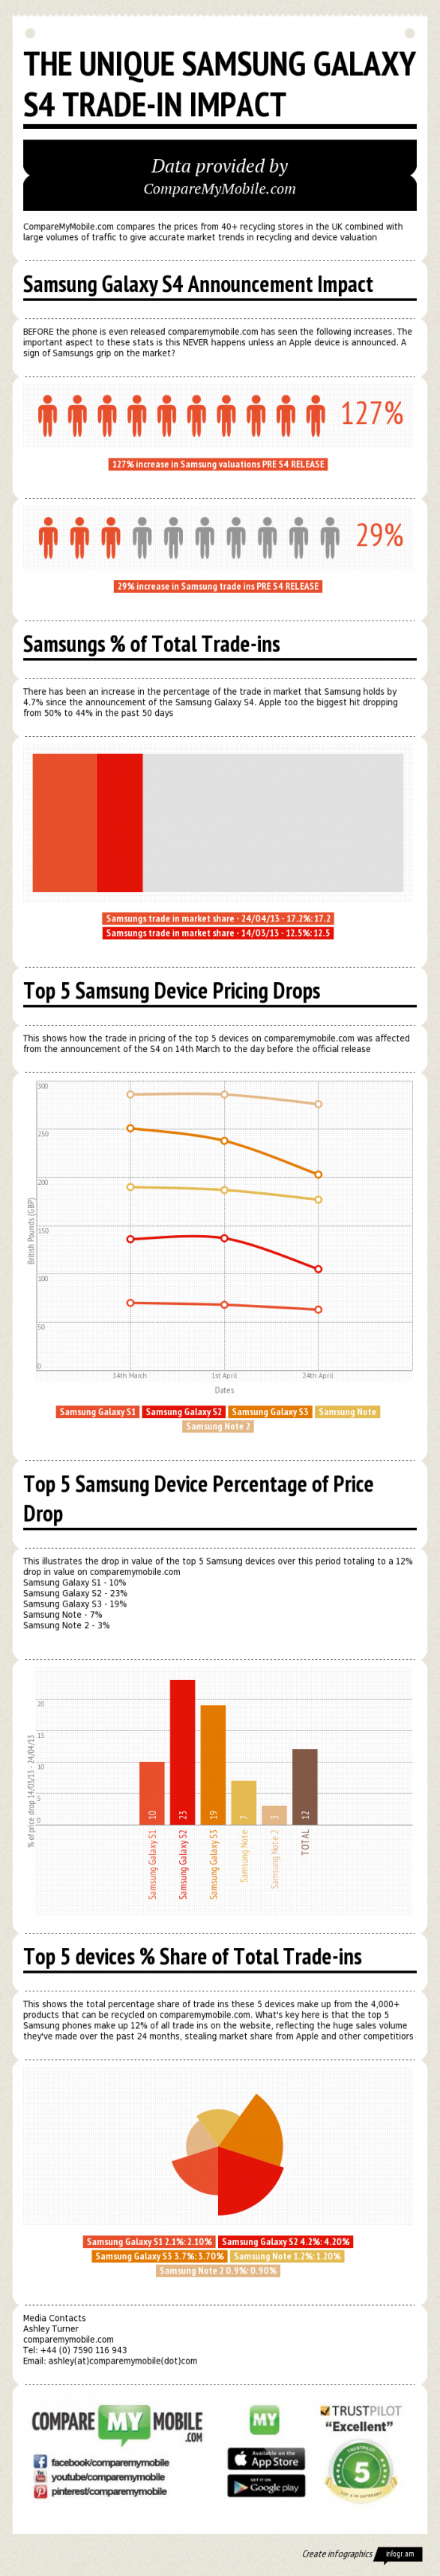 Phone Recycling Data: The Unique Samsung Galaxy S4 Trade-in Impact